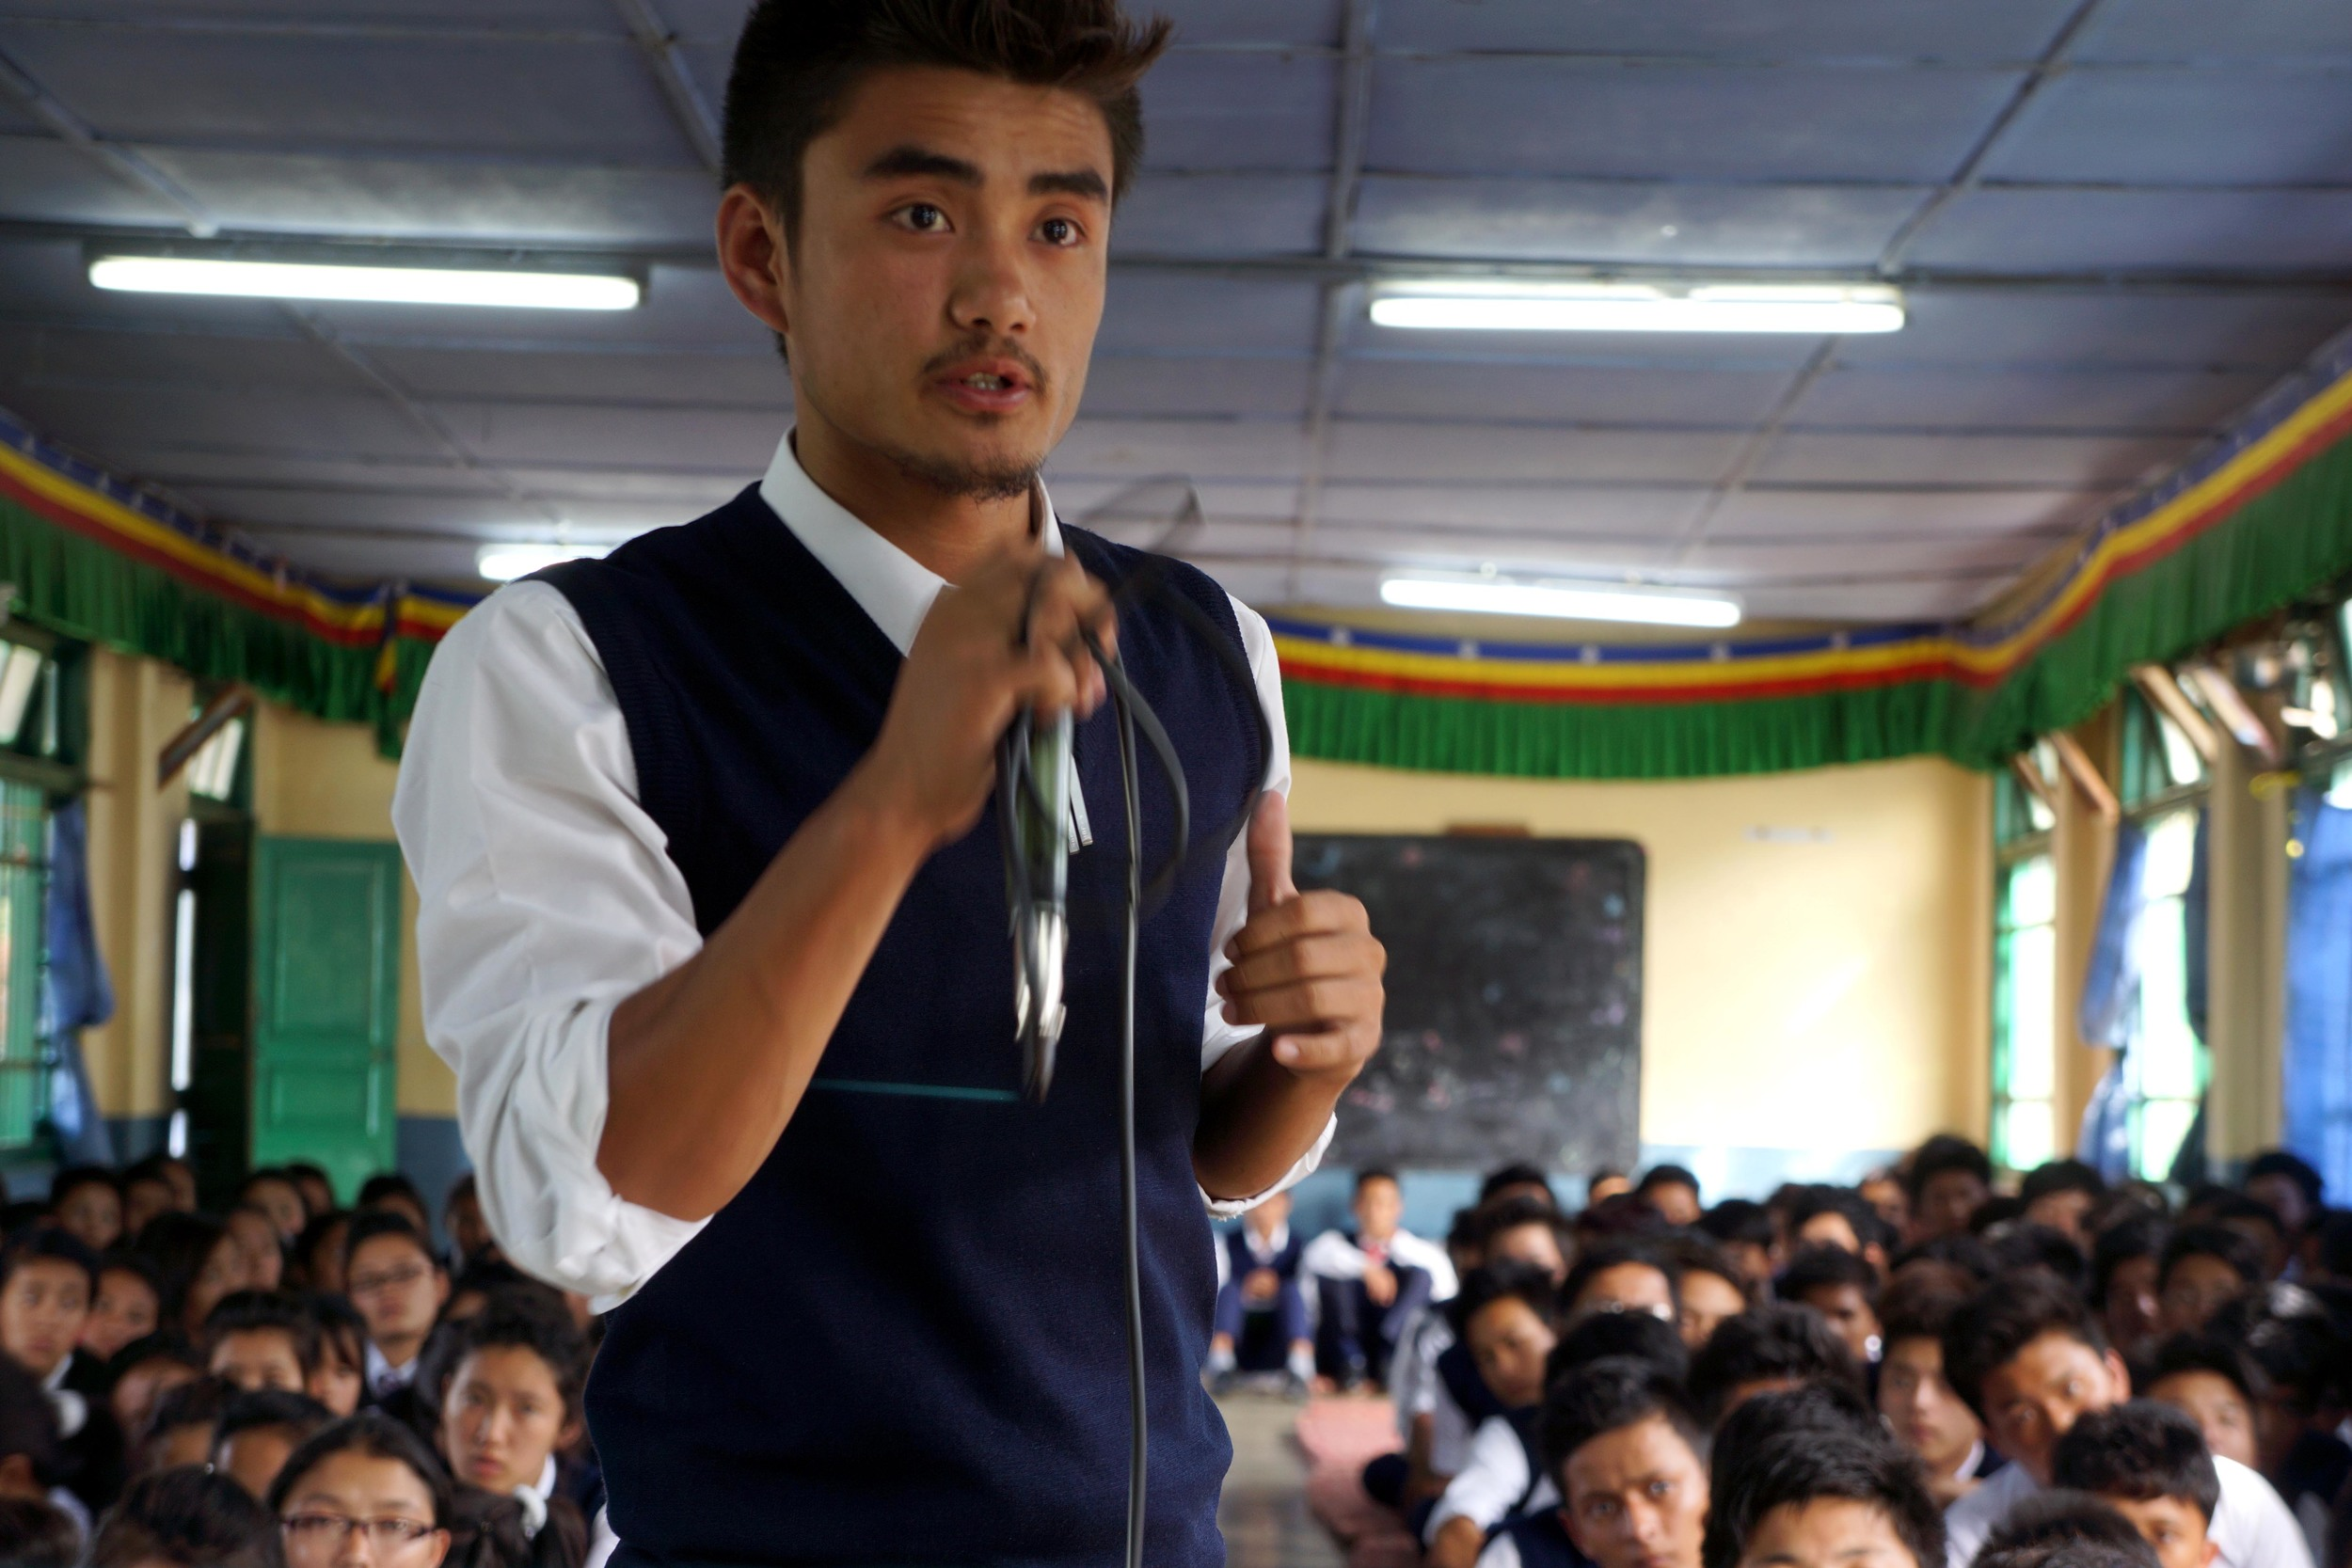 Tibetan student stands with microphone in hand